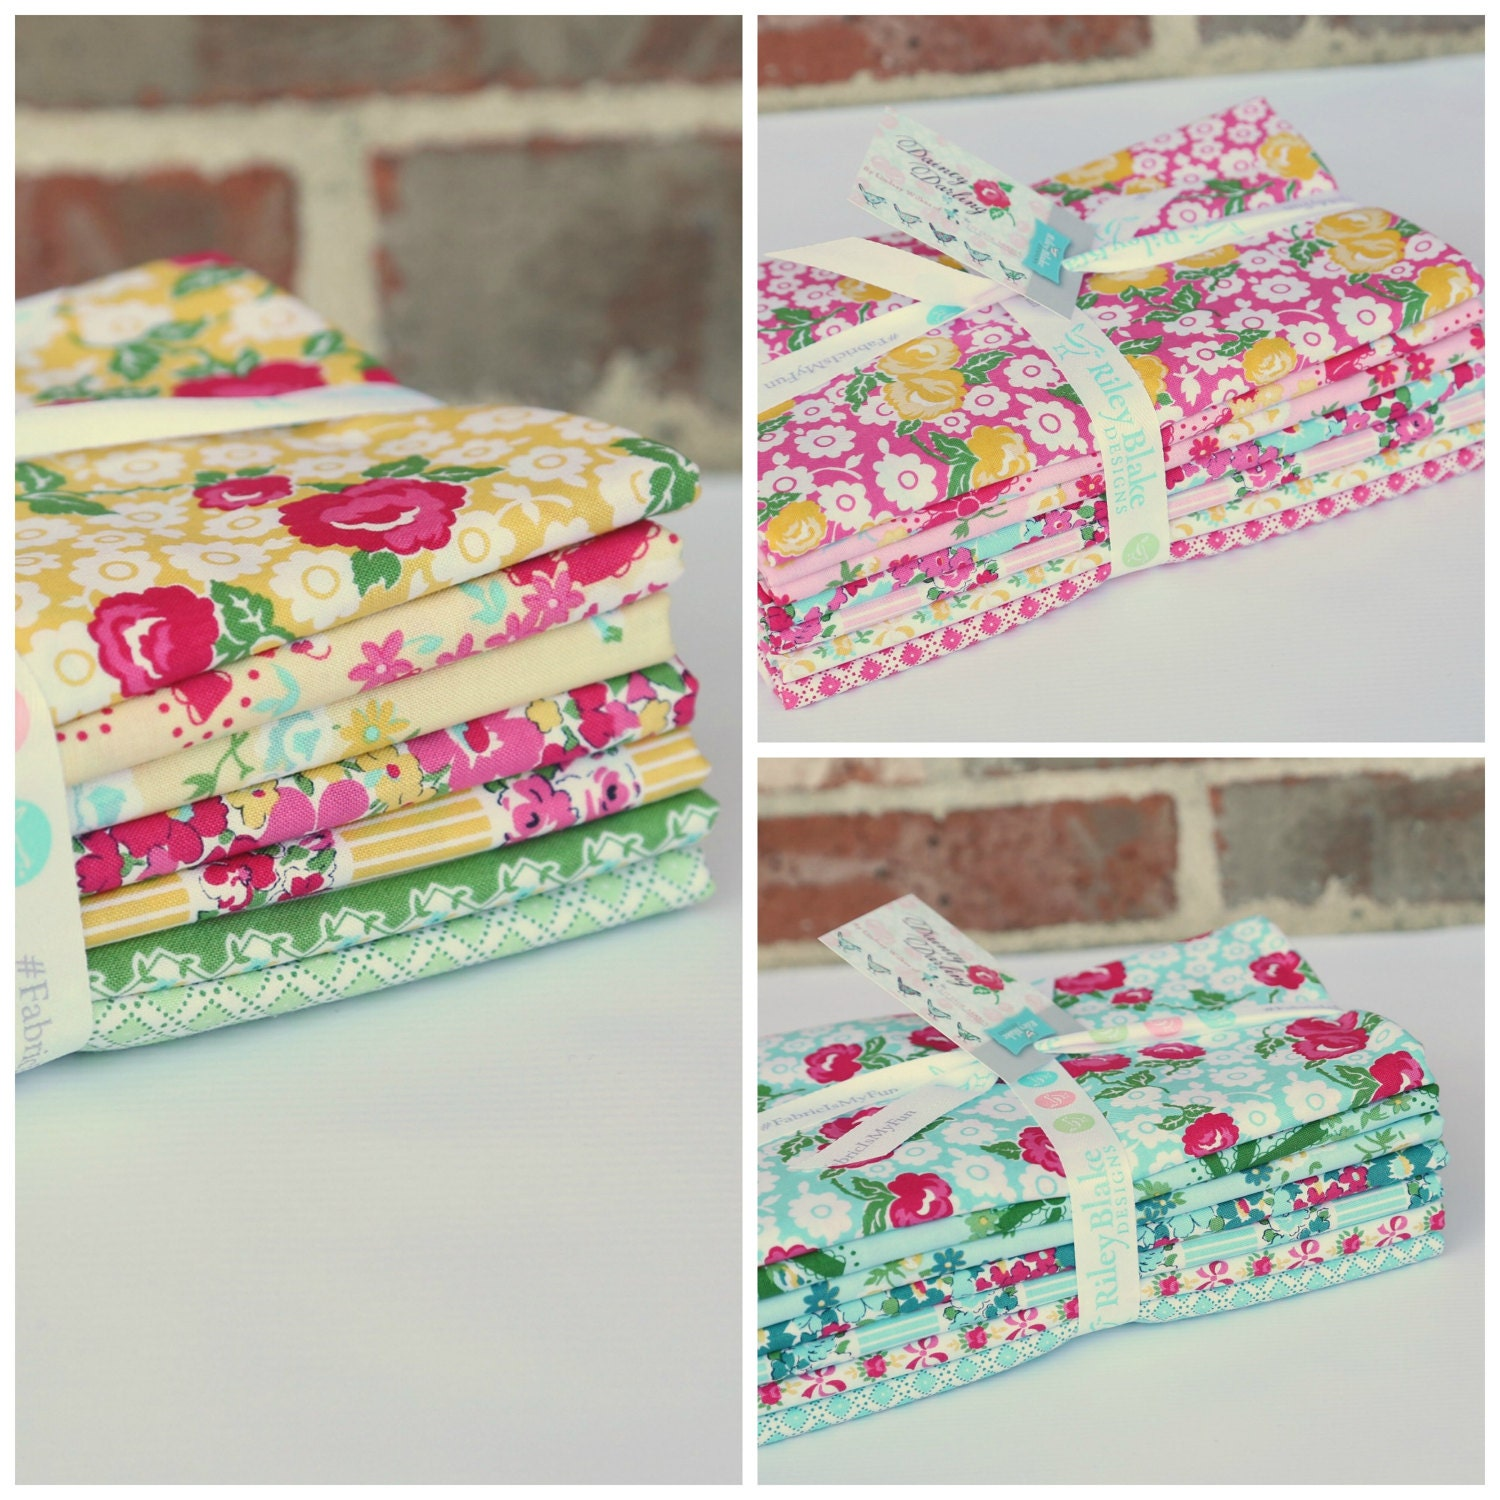 Dainty Darling Fabric by Lindsay Wilkes for Riley Blake Designs -Entire Collection - 21 yards